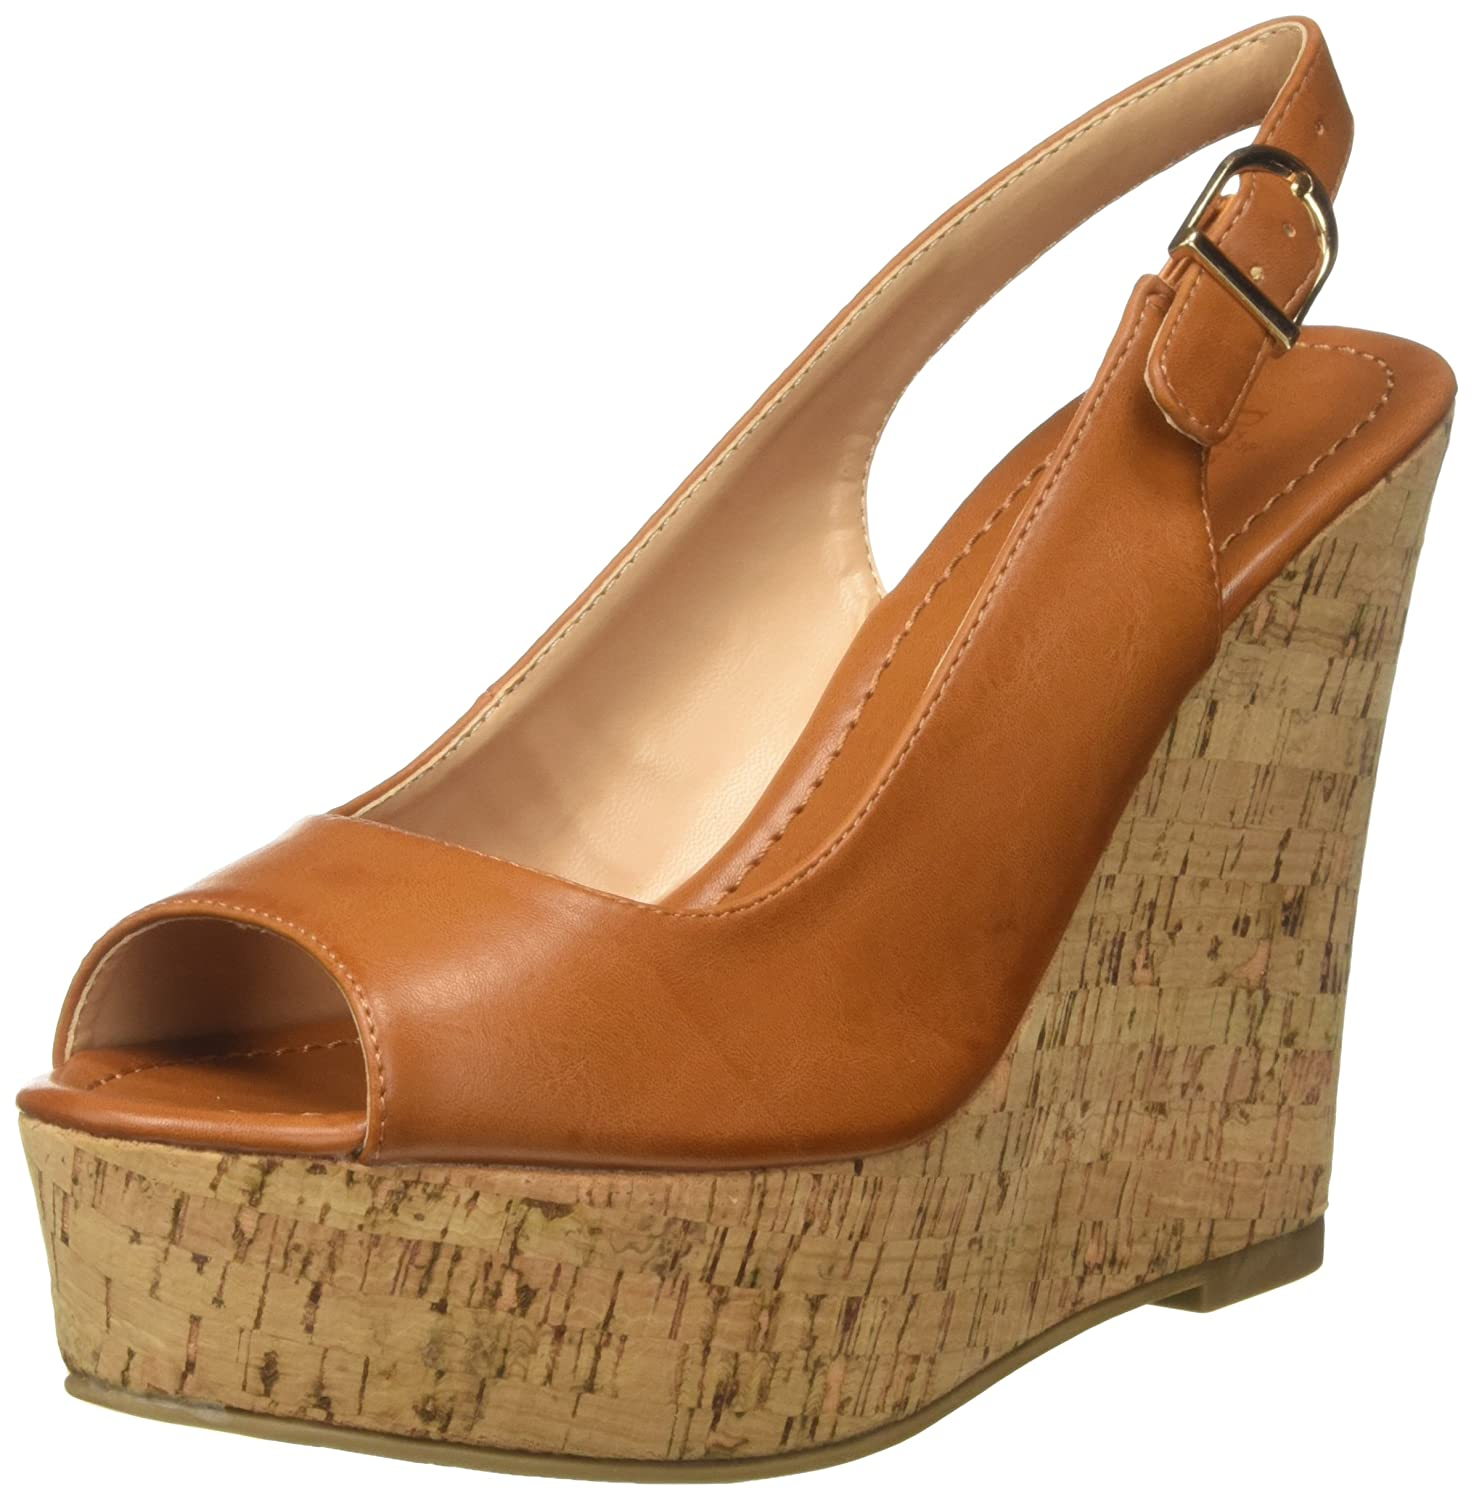 Reveal Sandali Donna, Marrone (Camel), 39 EU